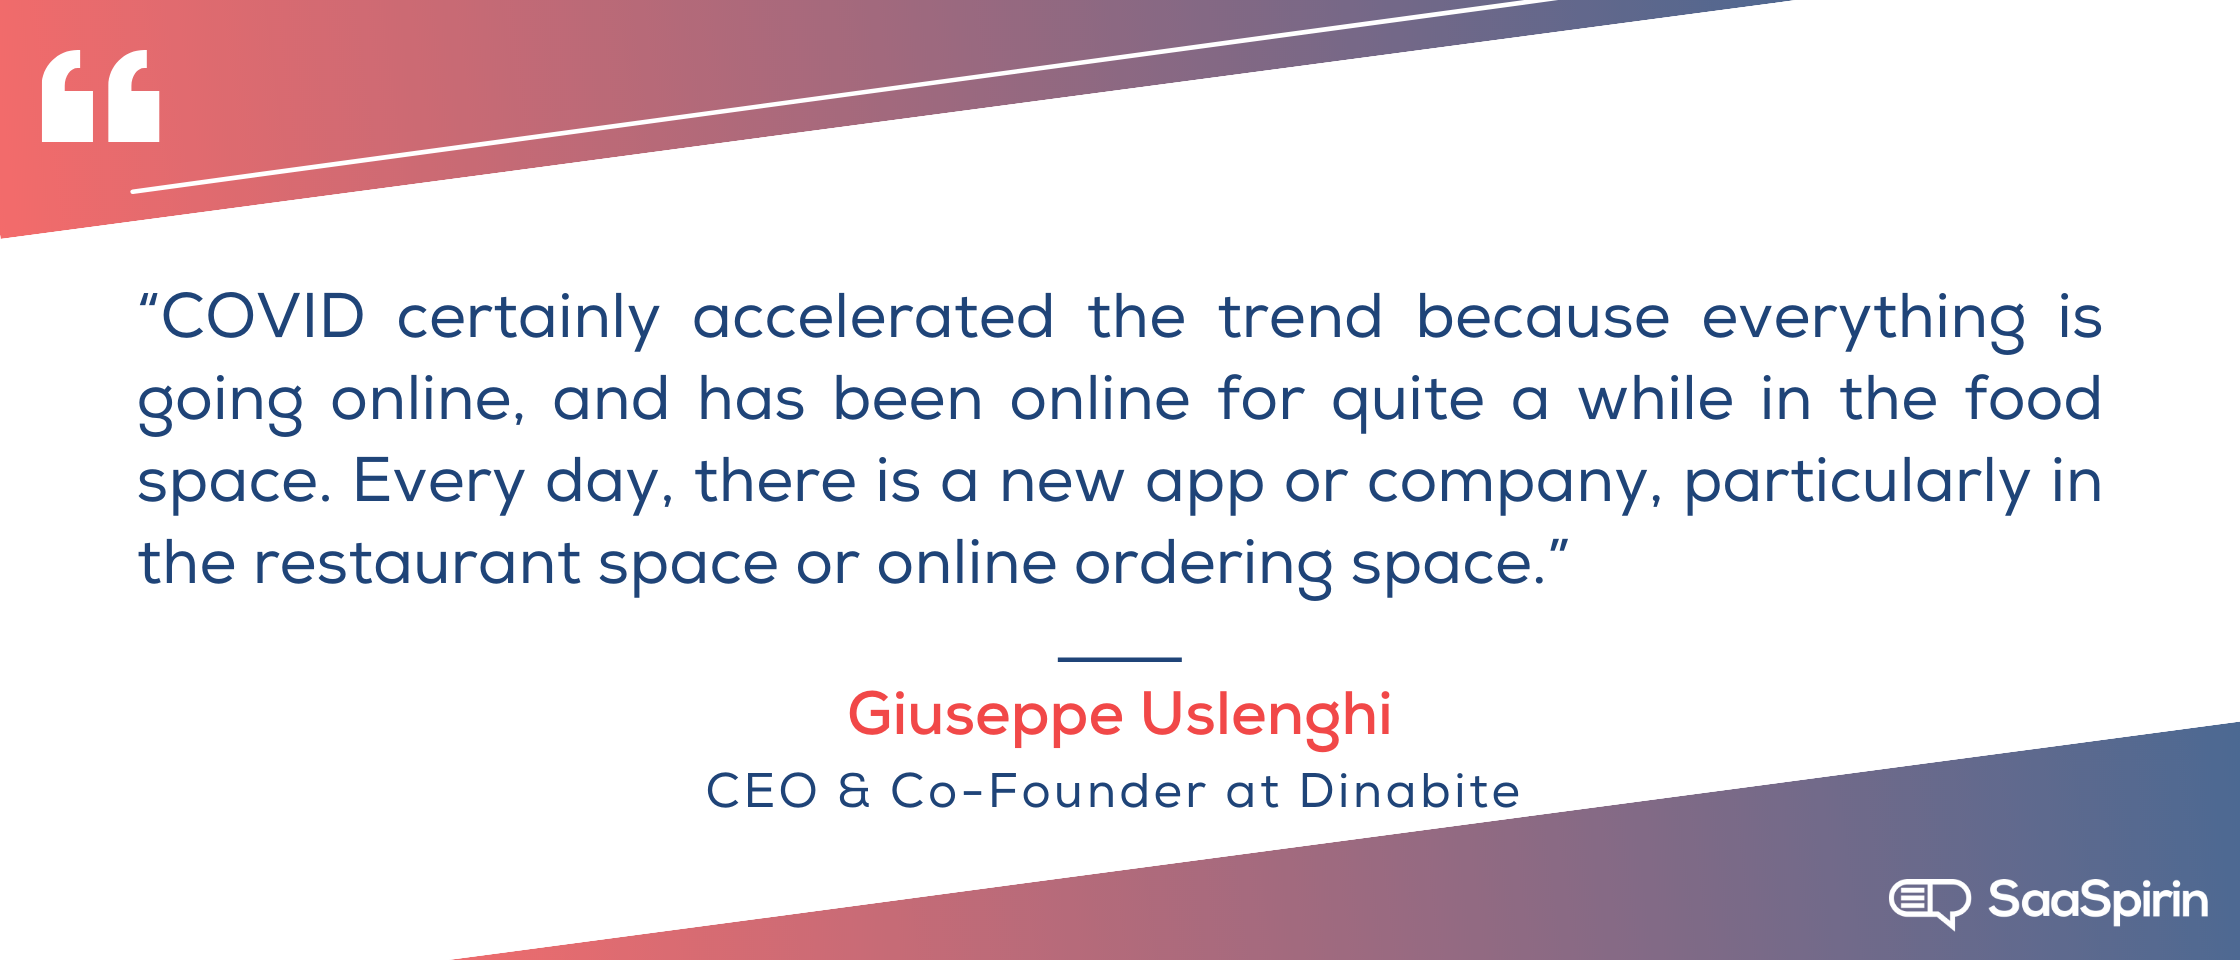 COVID-certainly-accelerated-the-trend-because-everything-is-going-online-and-has-been-online-for quite-a-while-in-the-food-space-Every-day-there-is-a-new-app-or-company-particularly-in-the-restaurant-space-or-online.png